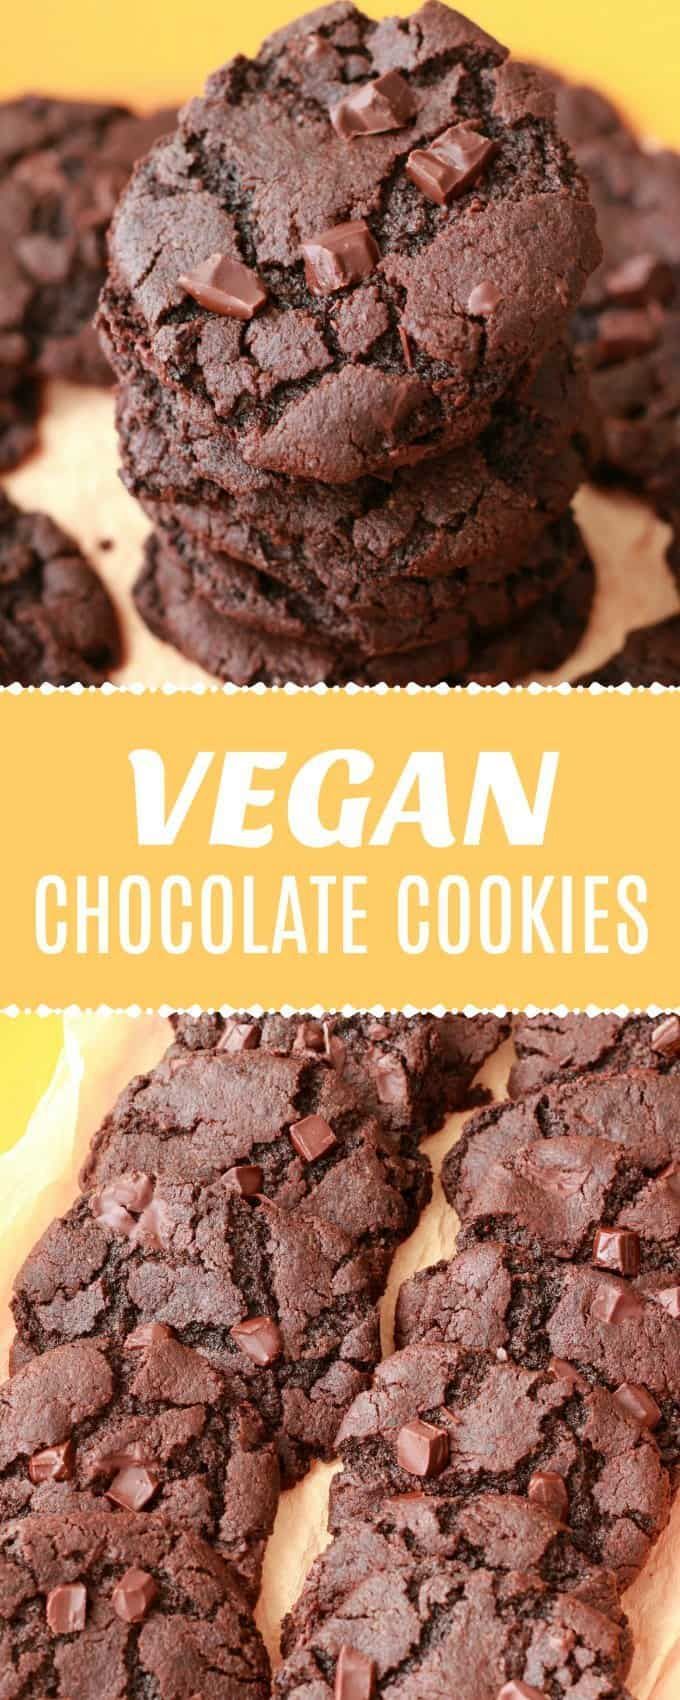 satisfying double-chocolate vegan chocolate cookies! Quick and easy, crunchy and soft, perfect for satisfying all your chocolate cravings. |